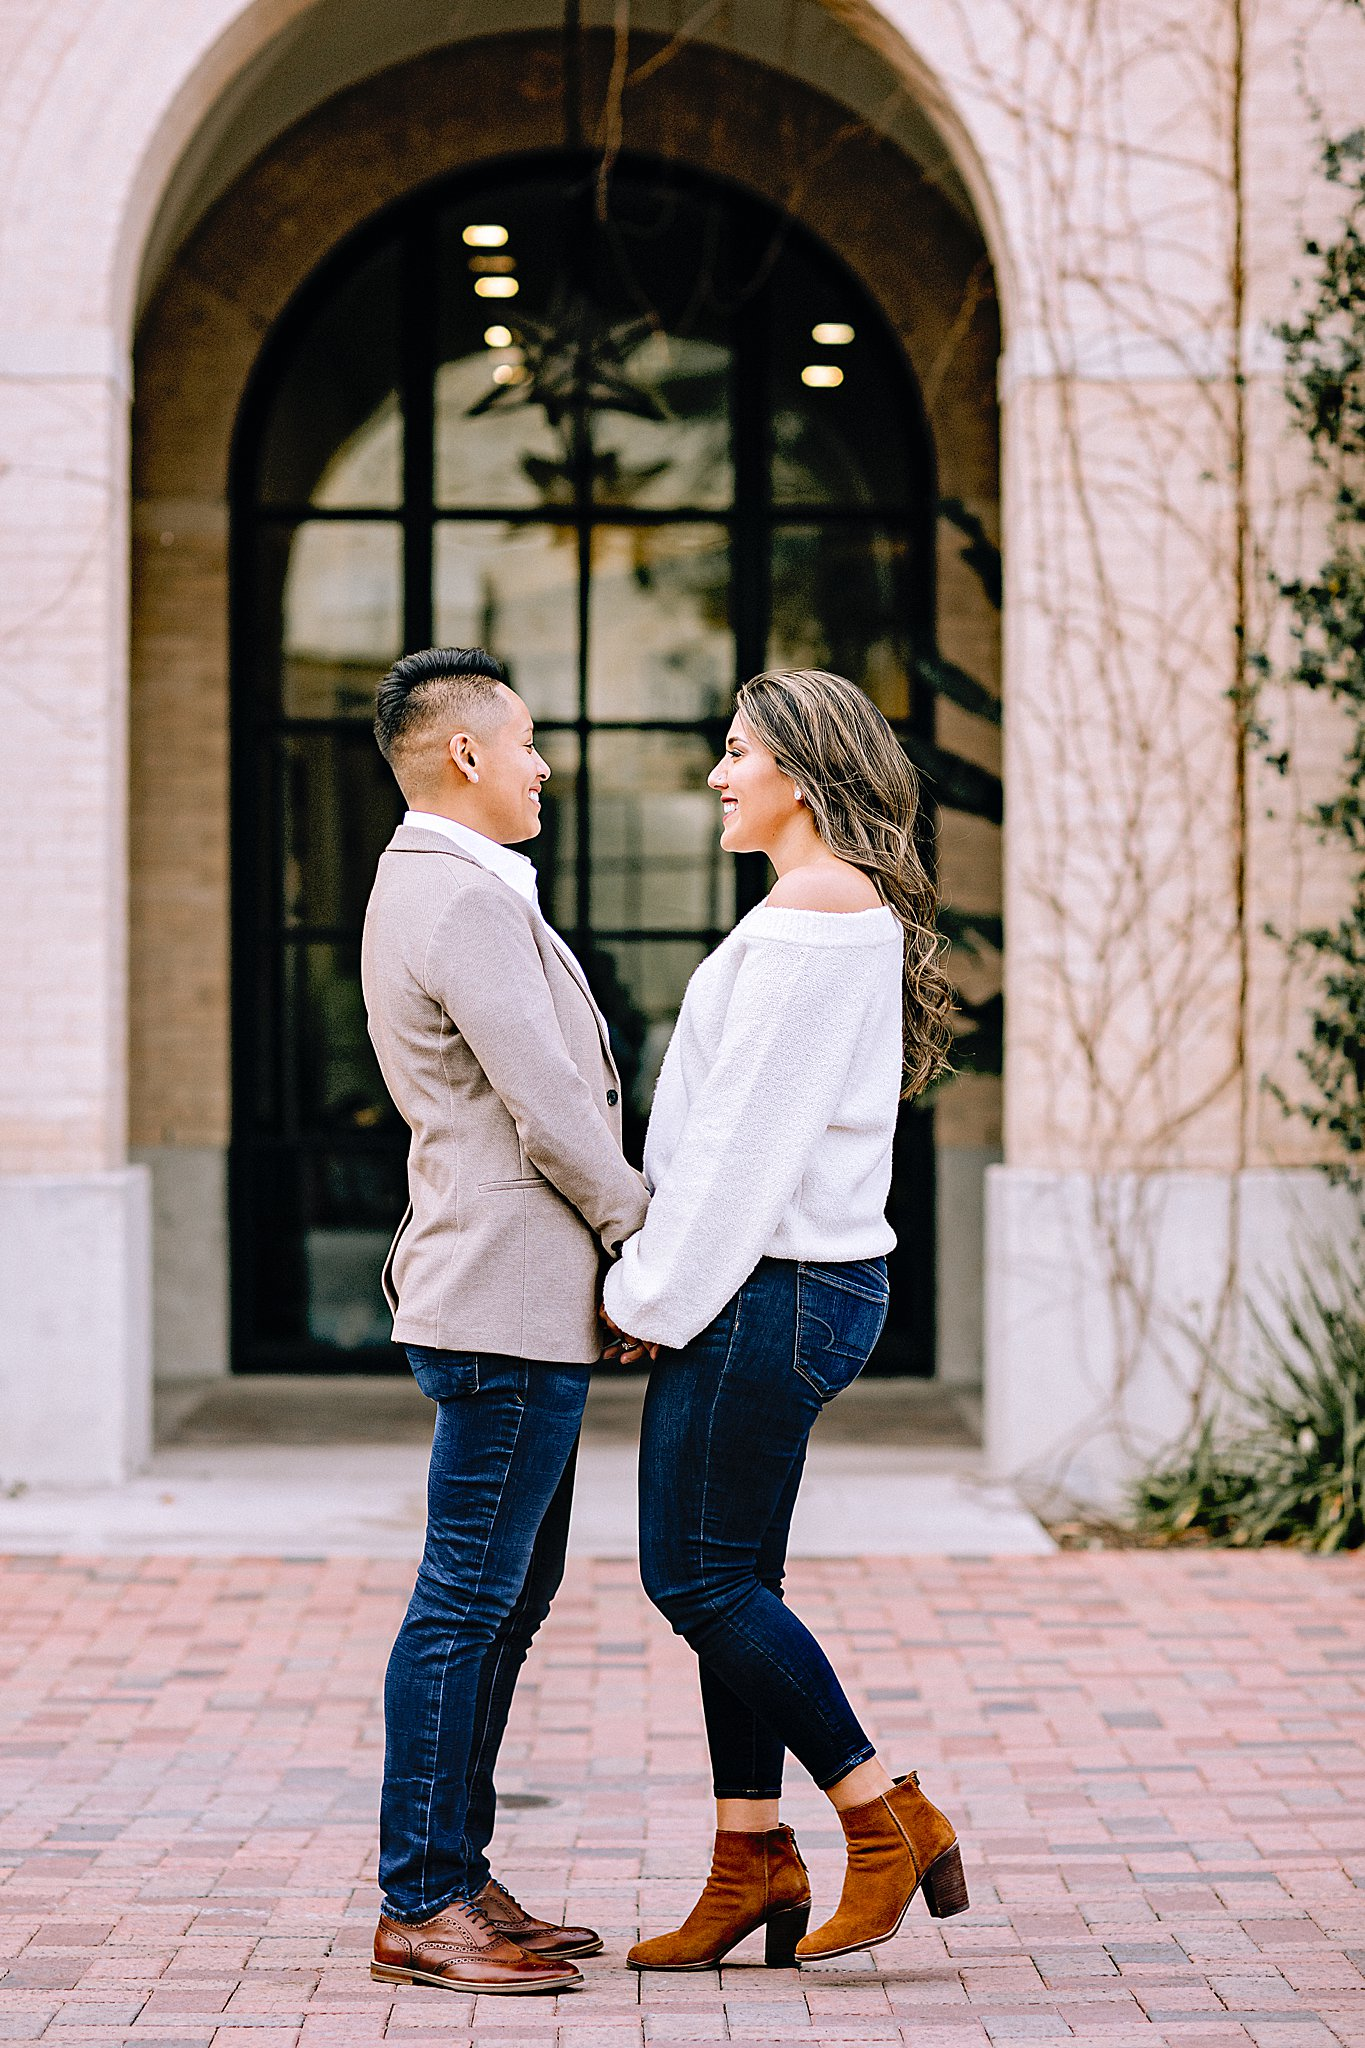 Carly-Barton-Photography-Texas-Engagement-Photographer-The-Historic-Pearl-San-Antonio_0005.jpg